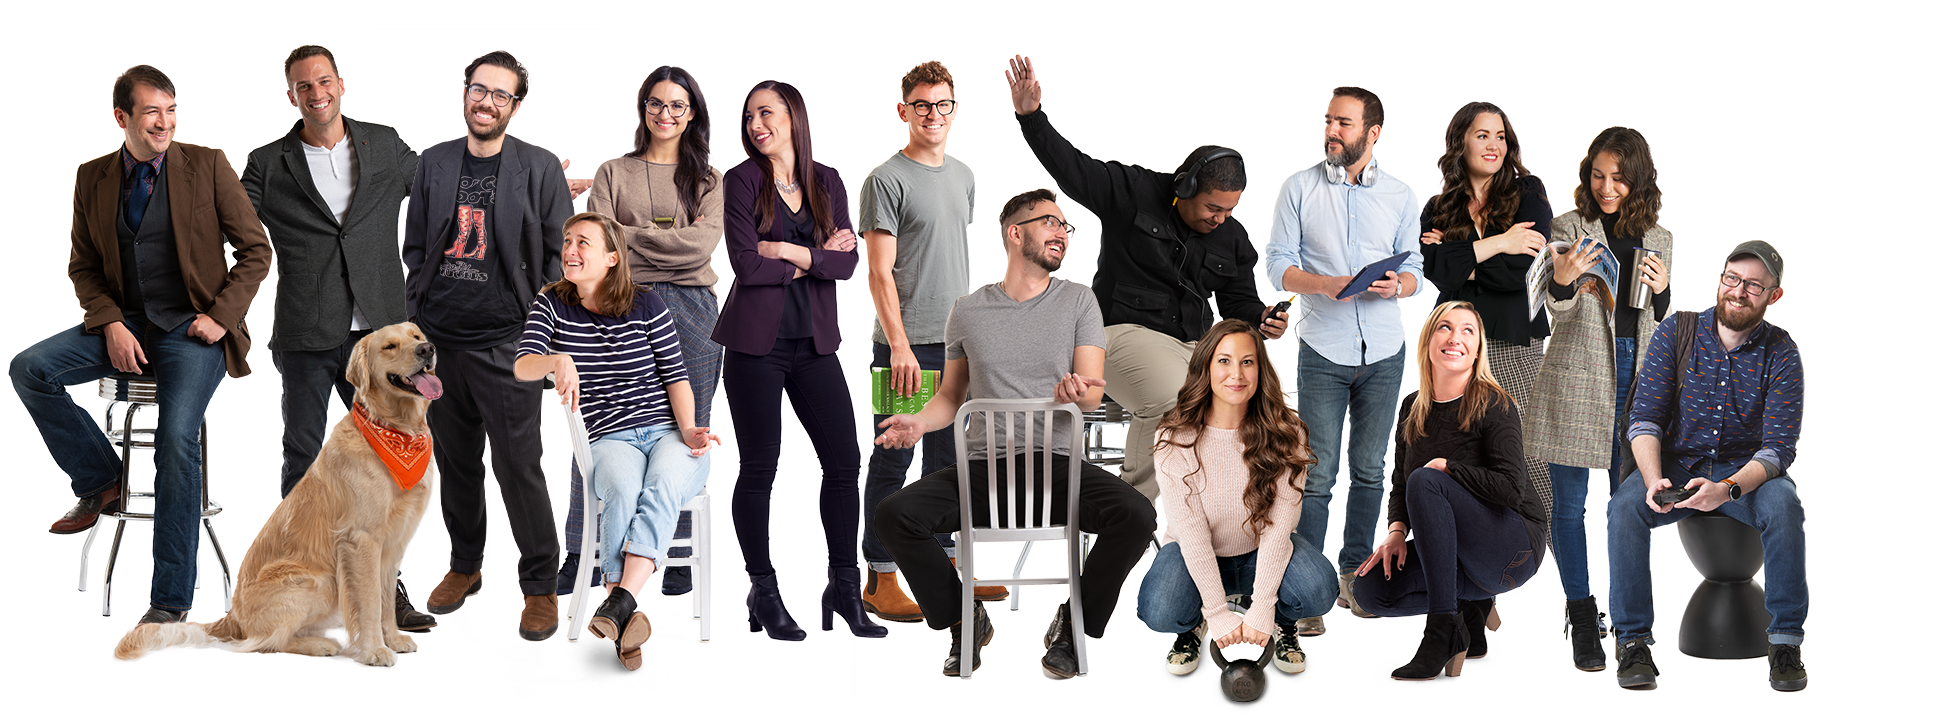 Team of Branding, Marketing, and Web Design Experts